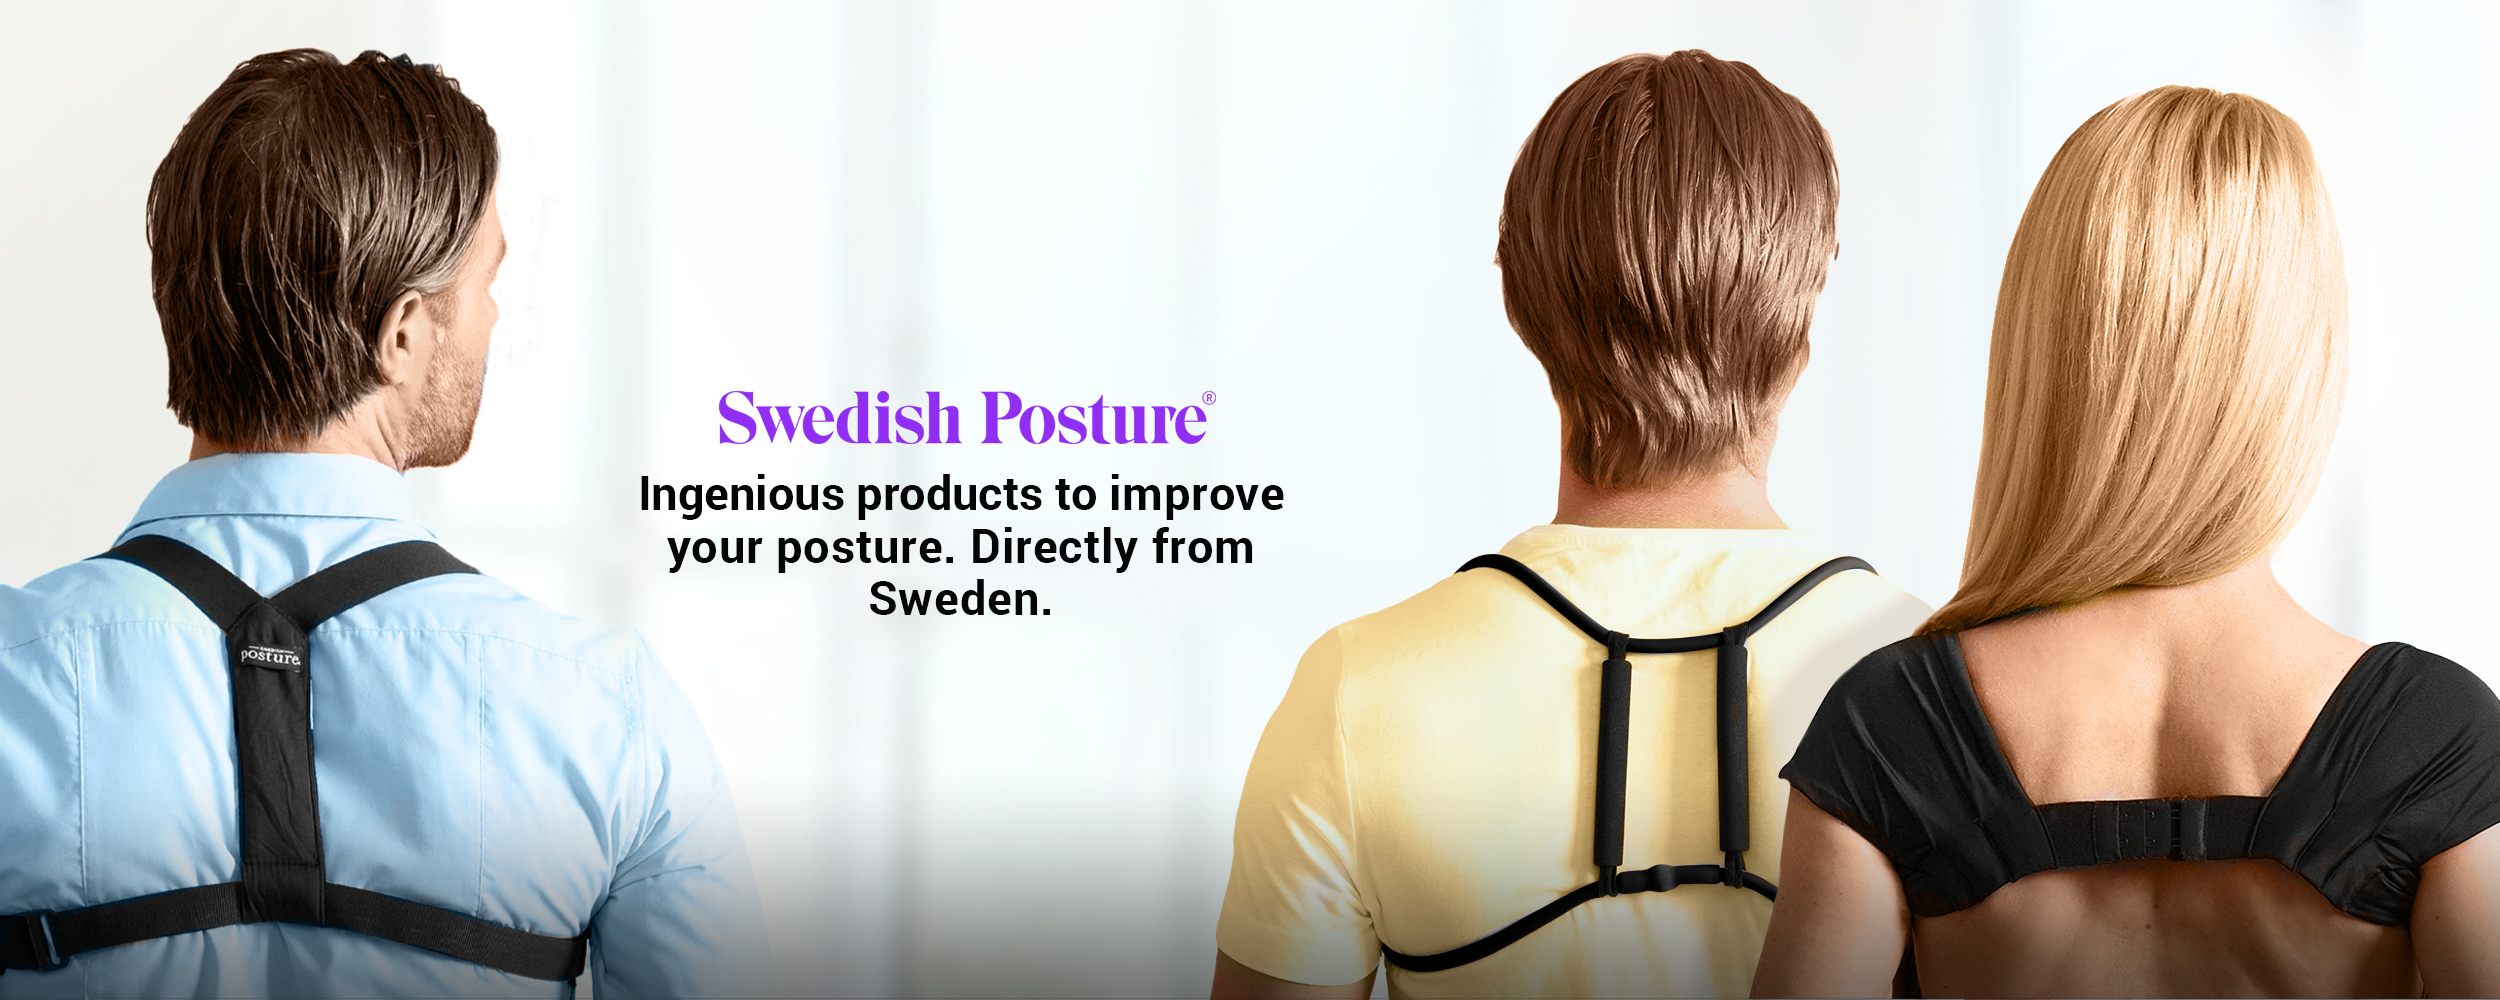 Swedish Posture - ingenious products to improve your posture. Directly from Sweden.